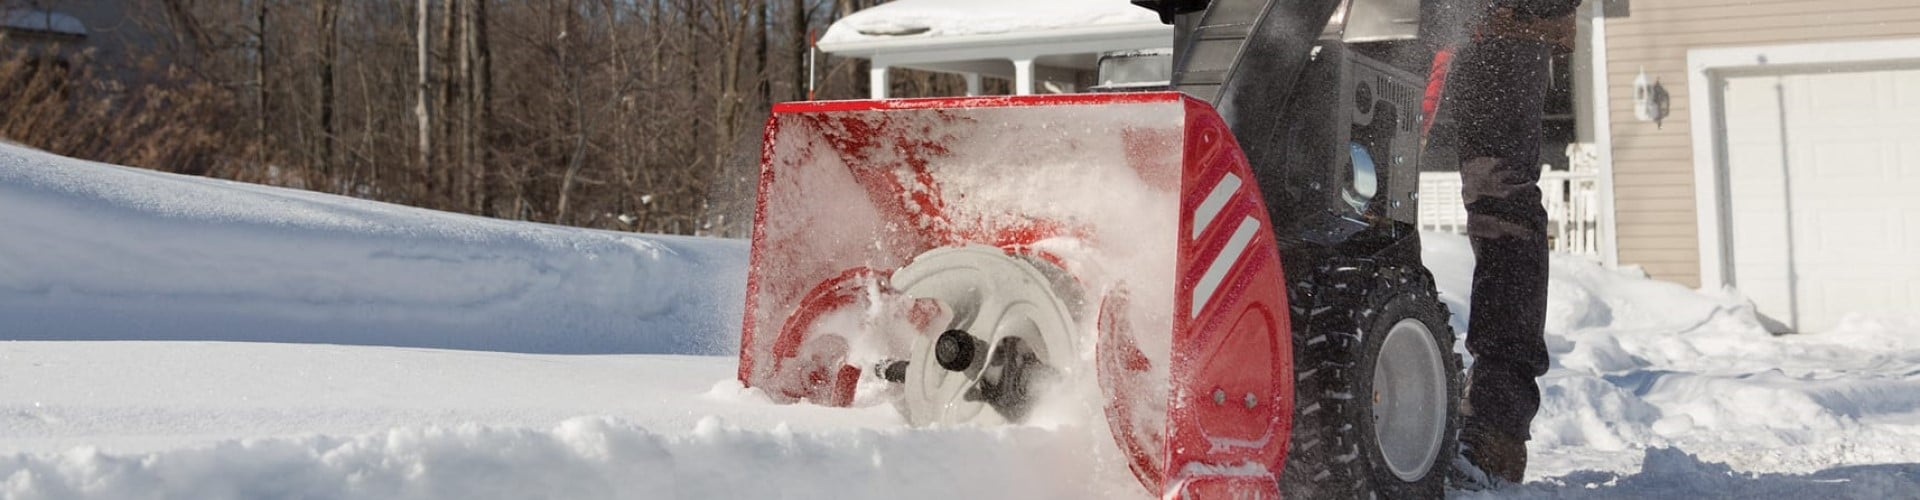 Five Best 3-Stage Snowblowers for Clearing Heavy Snow in Large Areas